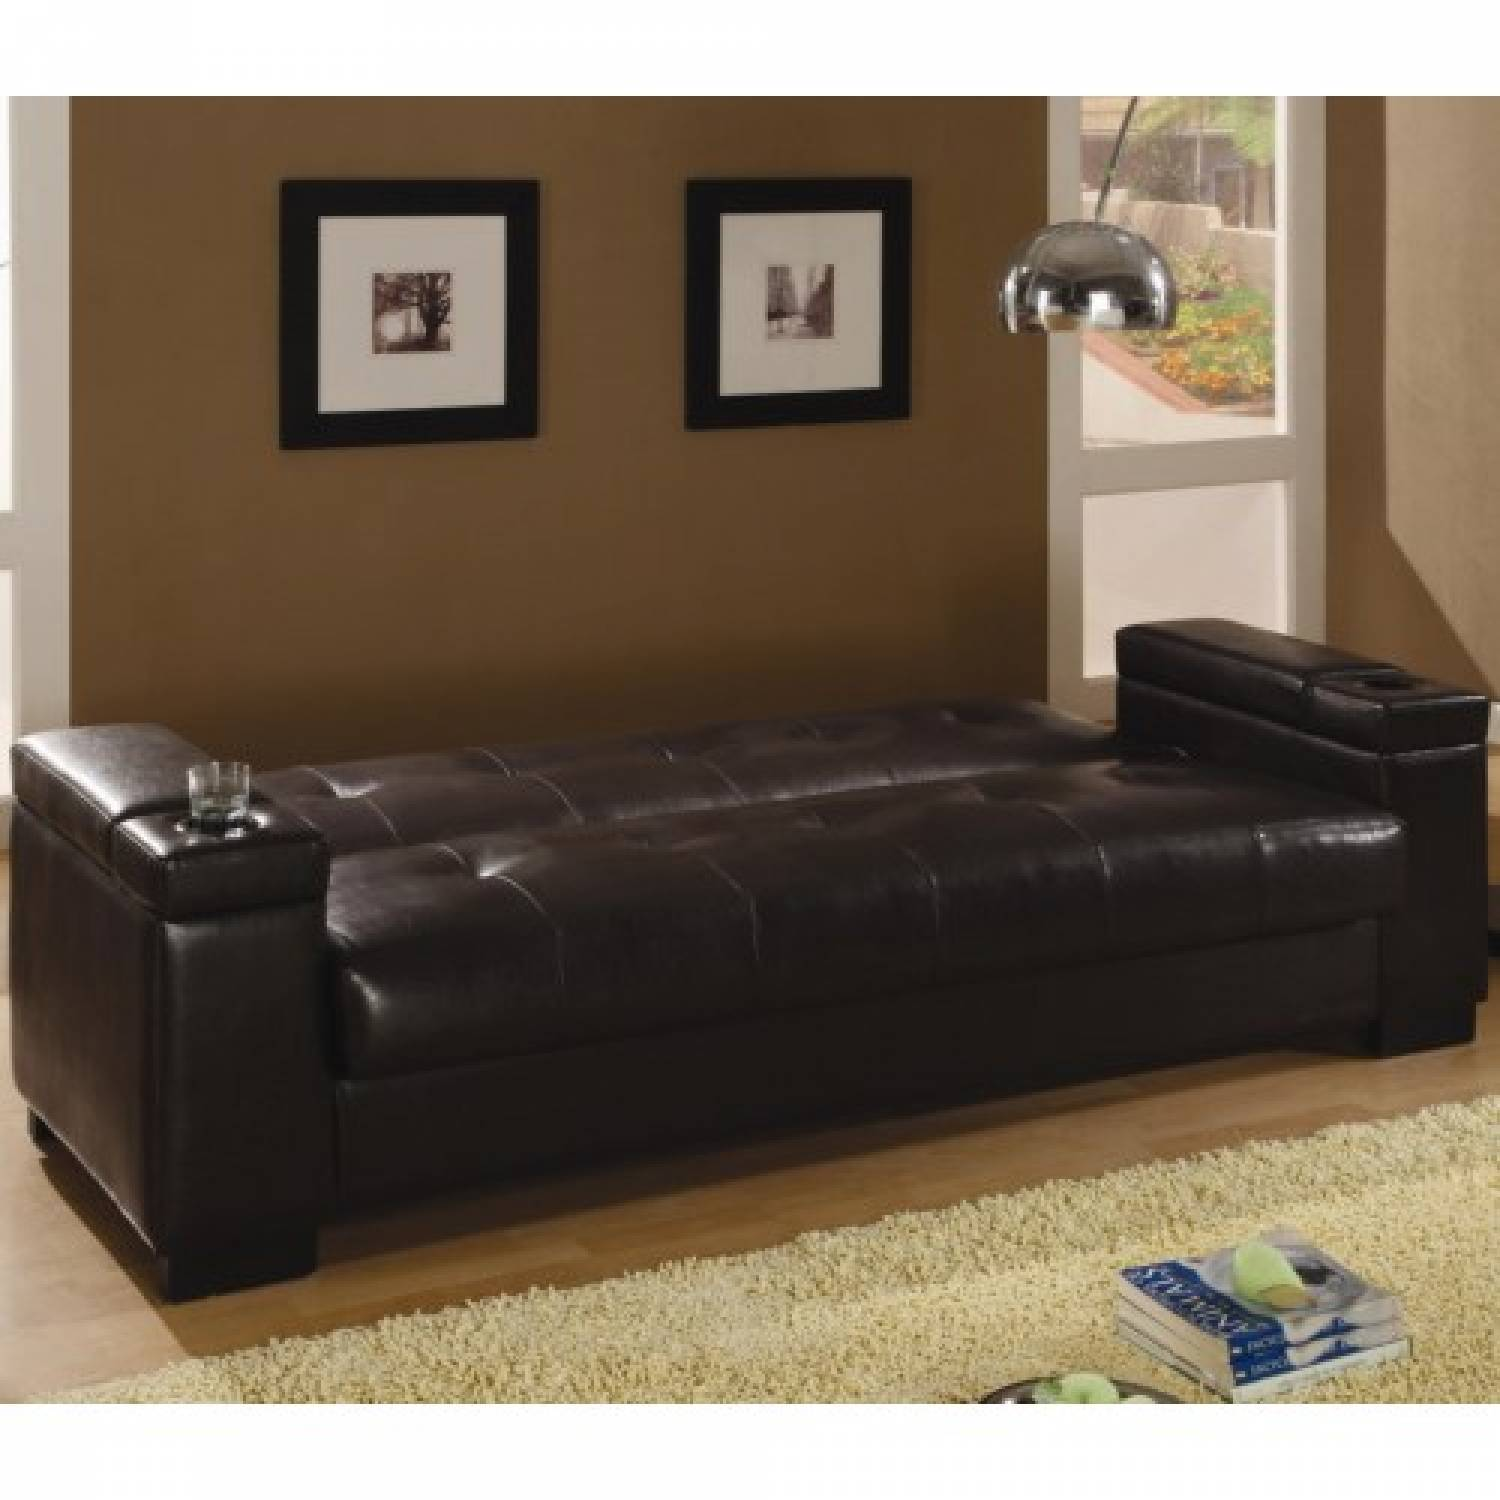 300143 Sofa Beds and Futons Faux Leather Convertible Sofa Sleeper with  Storage